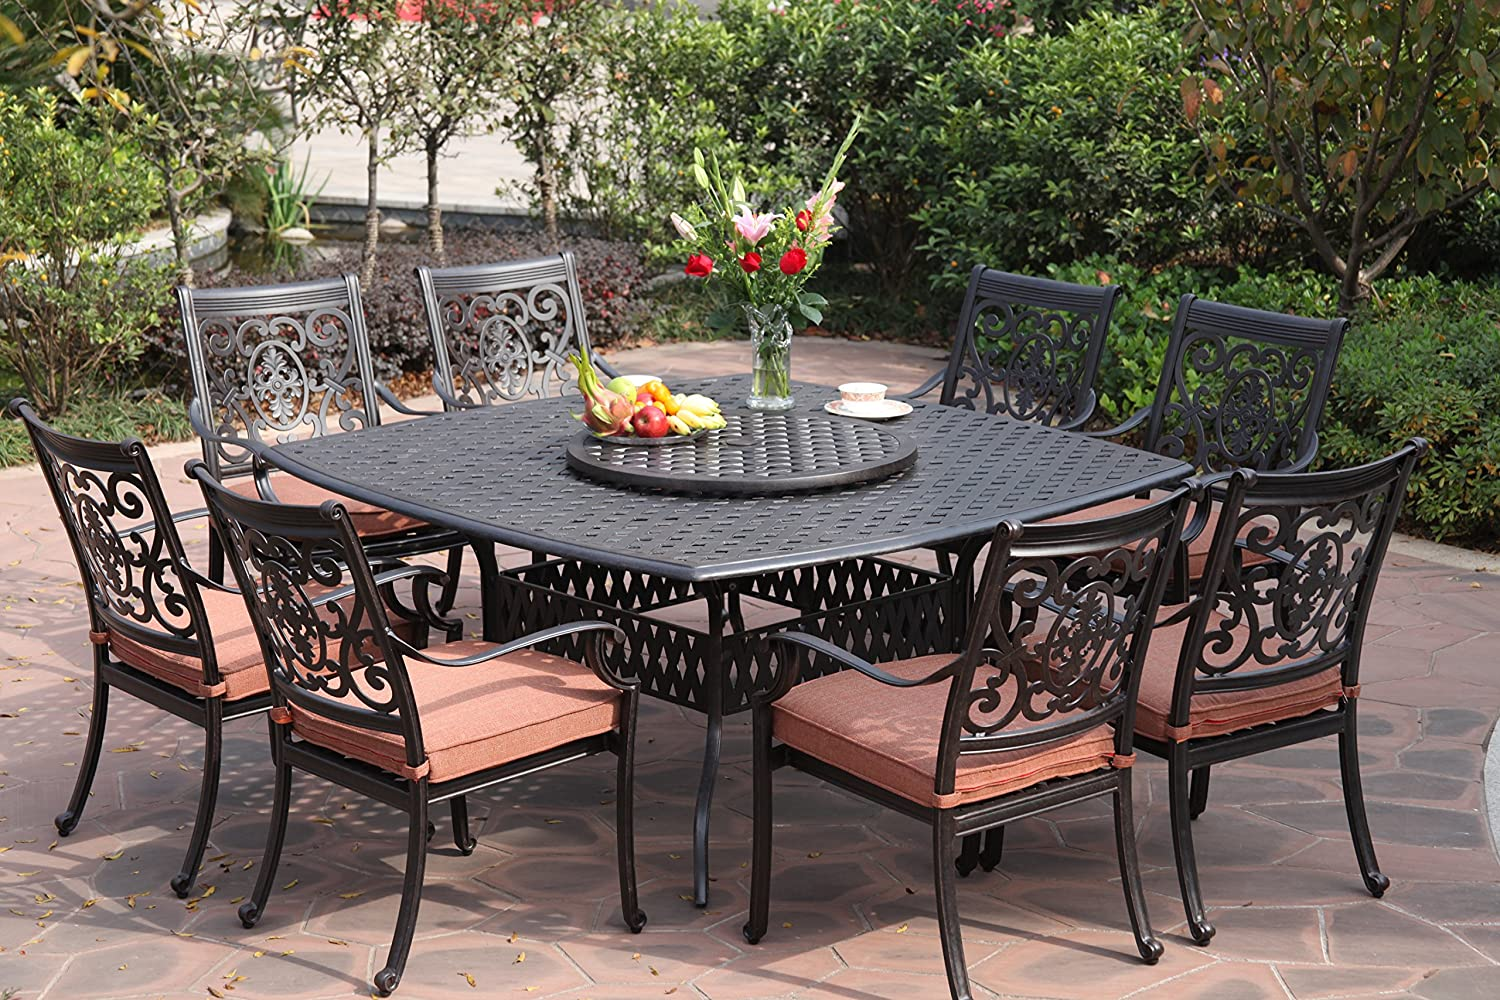 Amazon.com: Darlee St. Cruz Cast Aluminum 10 Piece Dining Set With Seat  Cushions, 64 Inch Square Dining Table And 30 Inch Lazy Susan, Antique  Bronze Finish: ...